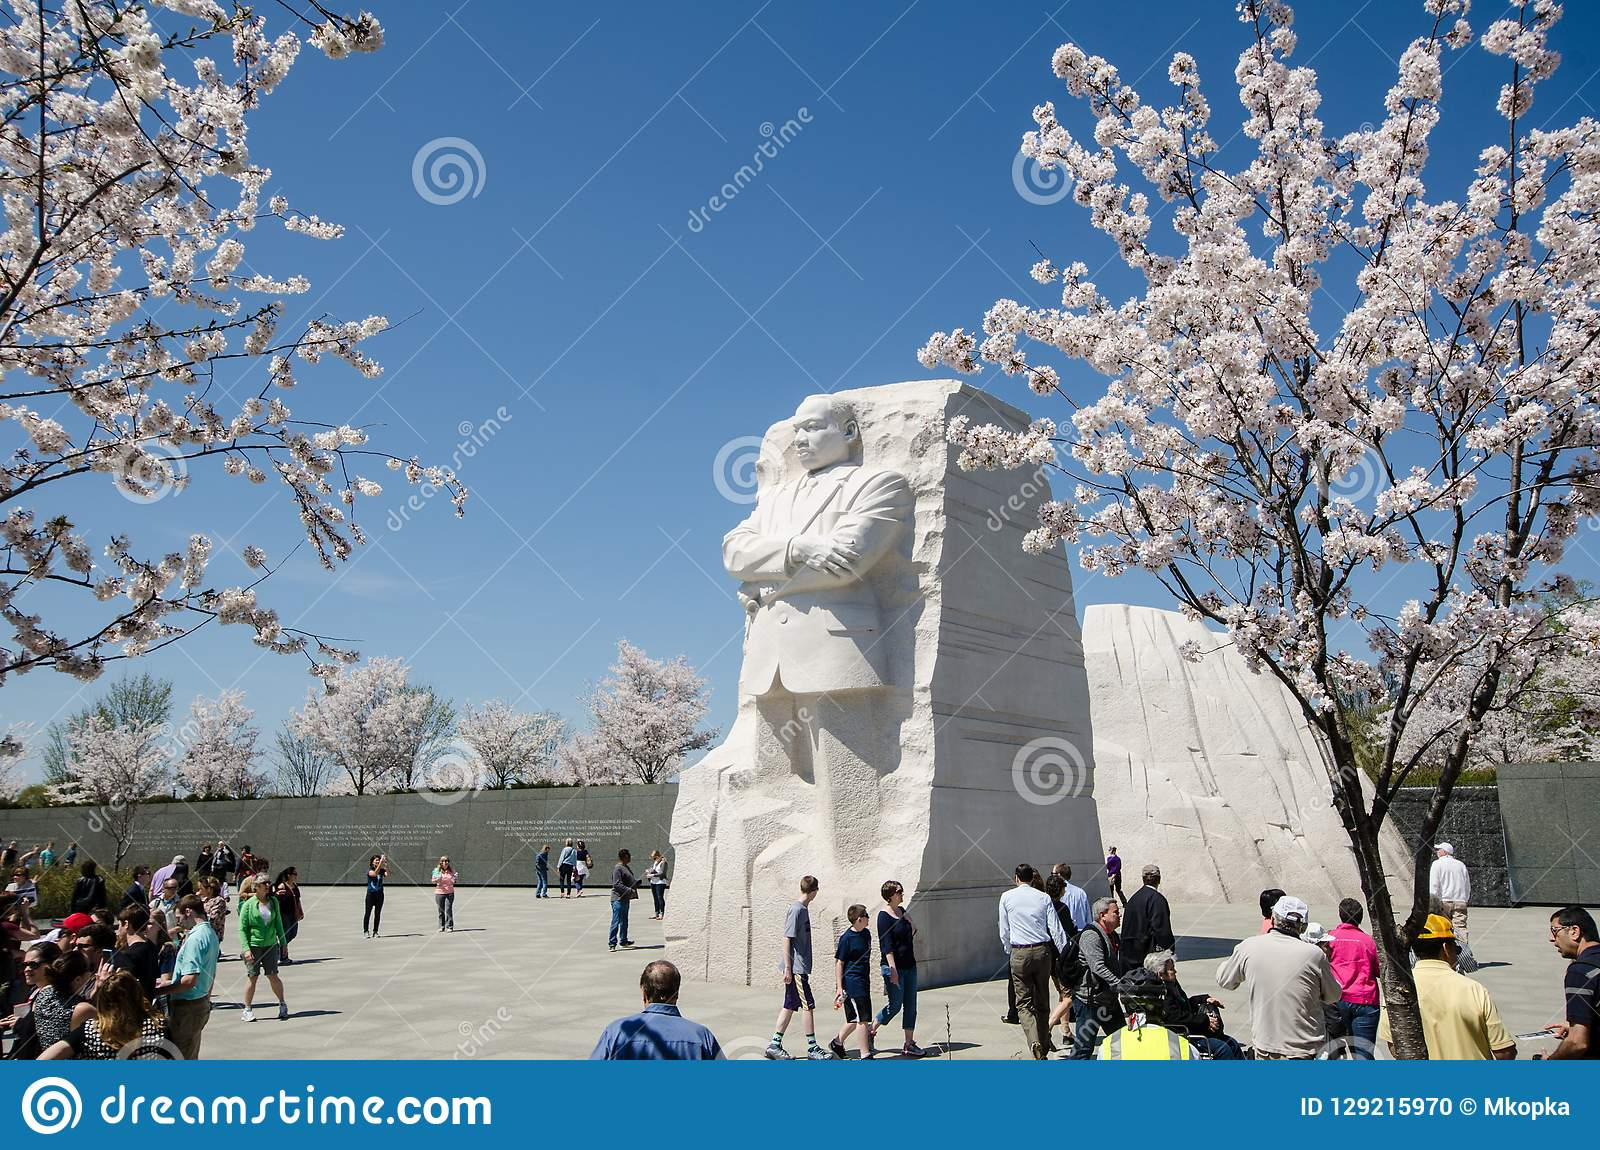 Tourists crowds gather around the MLK Jr. Memorial during the Cherry Blossom Festival in Washington DC